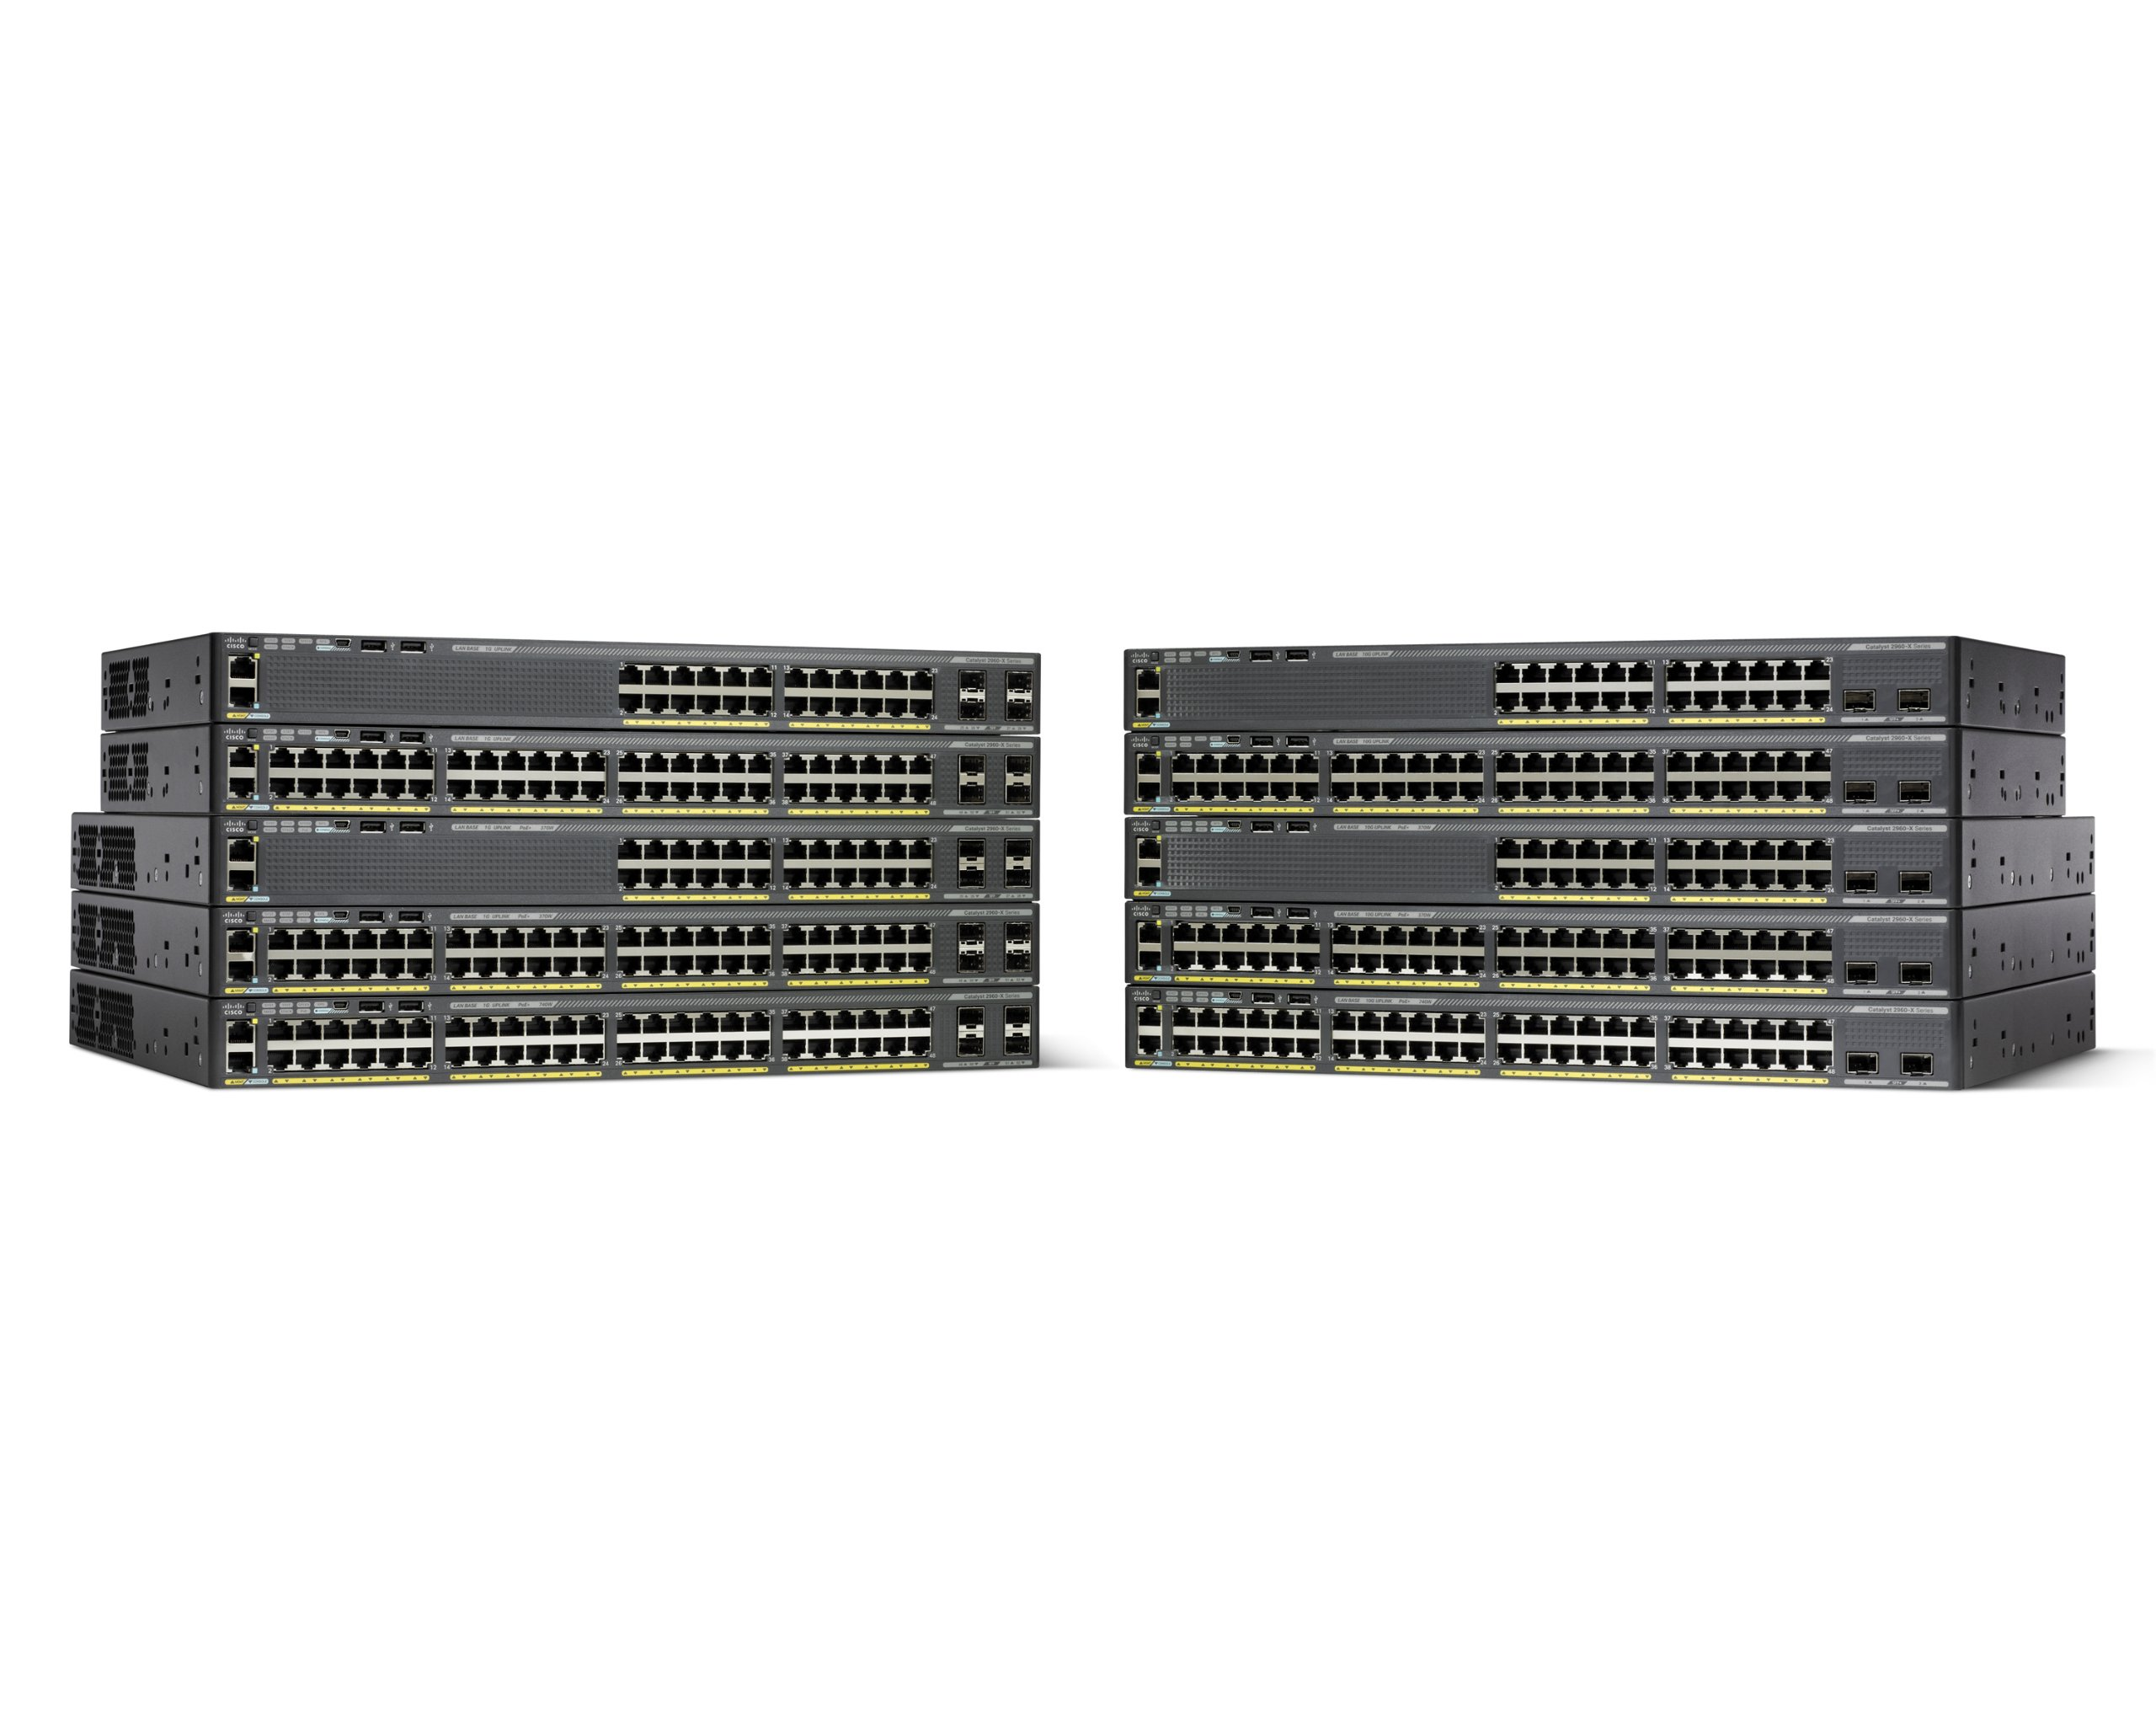 Cisco Catalyst WS-C2960X-24PS-L 24 Port Ethernet Switch with 370 Watt PoE by Cisco